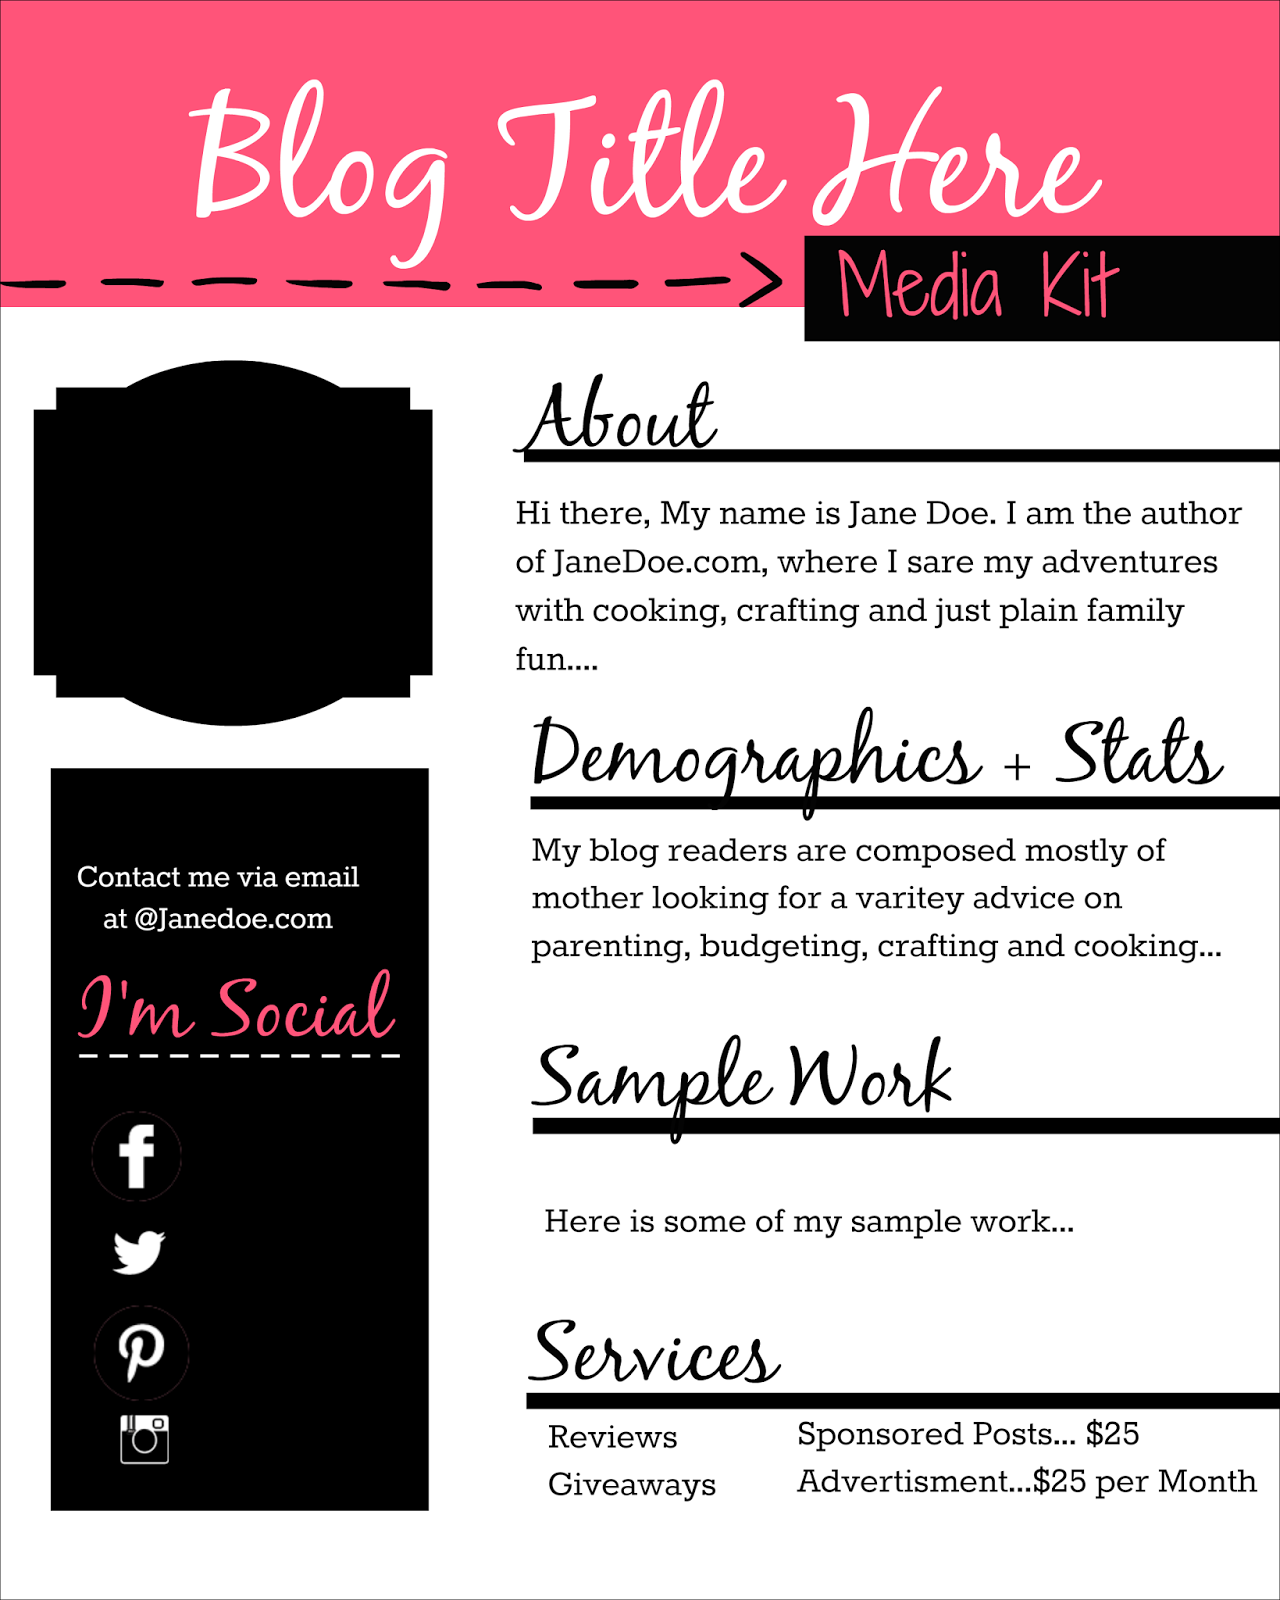 How to design a free media kit for your blog premade for Press kit design